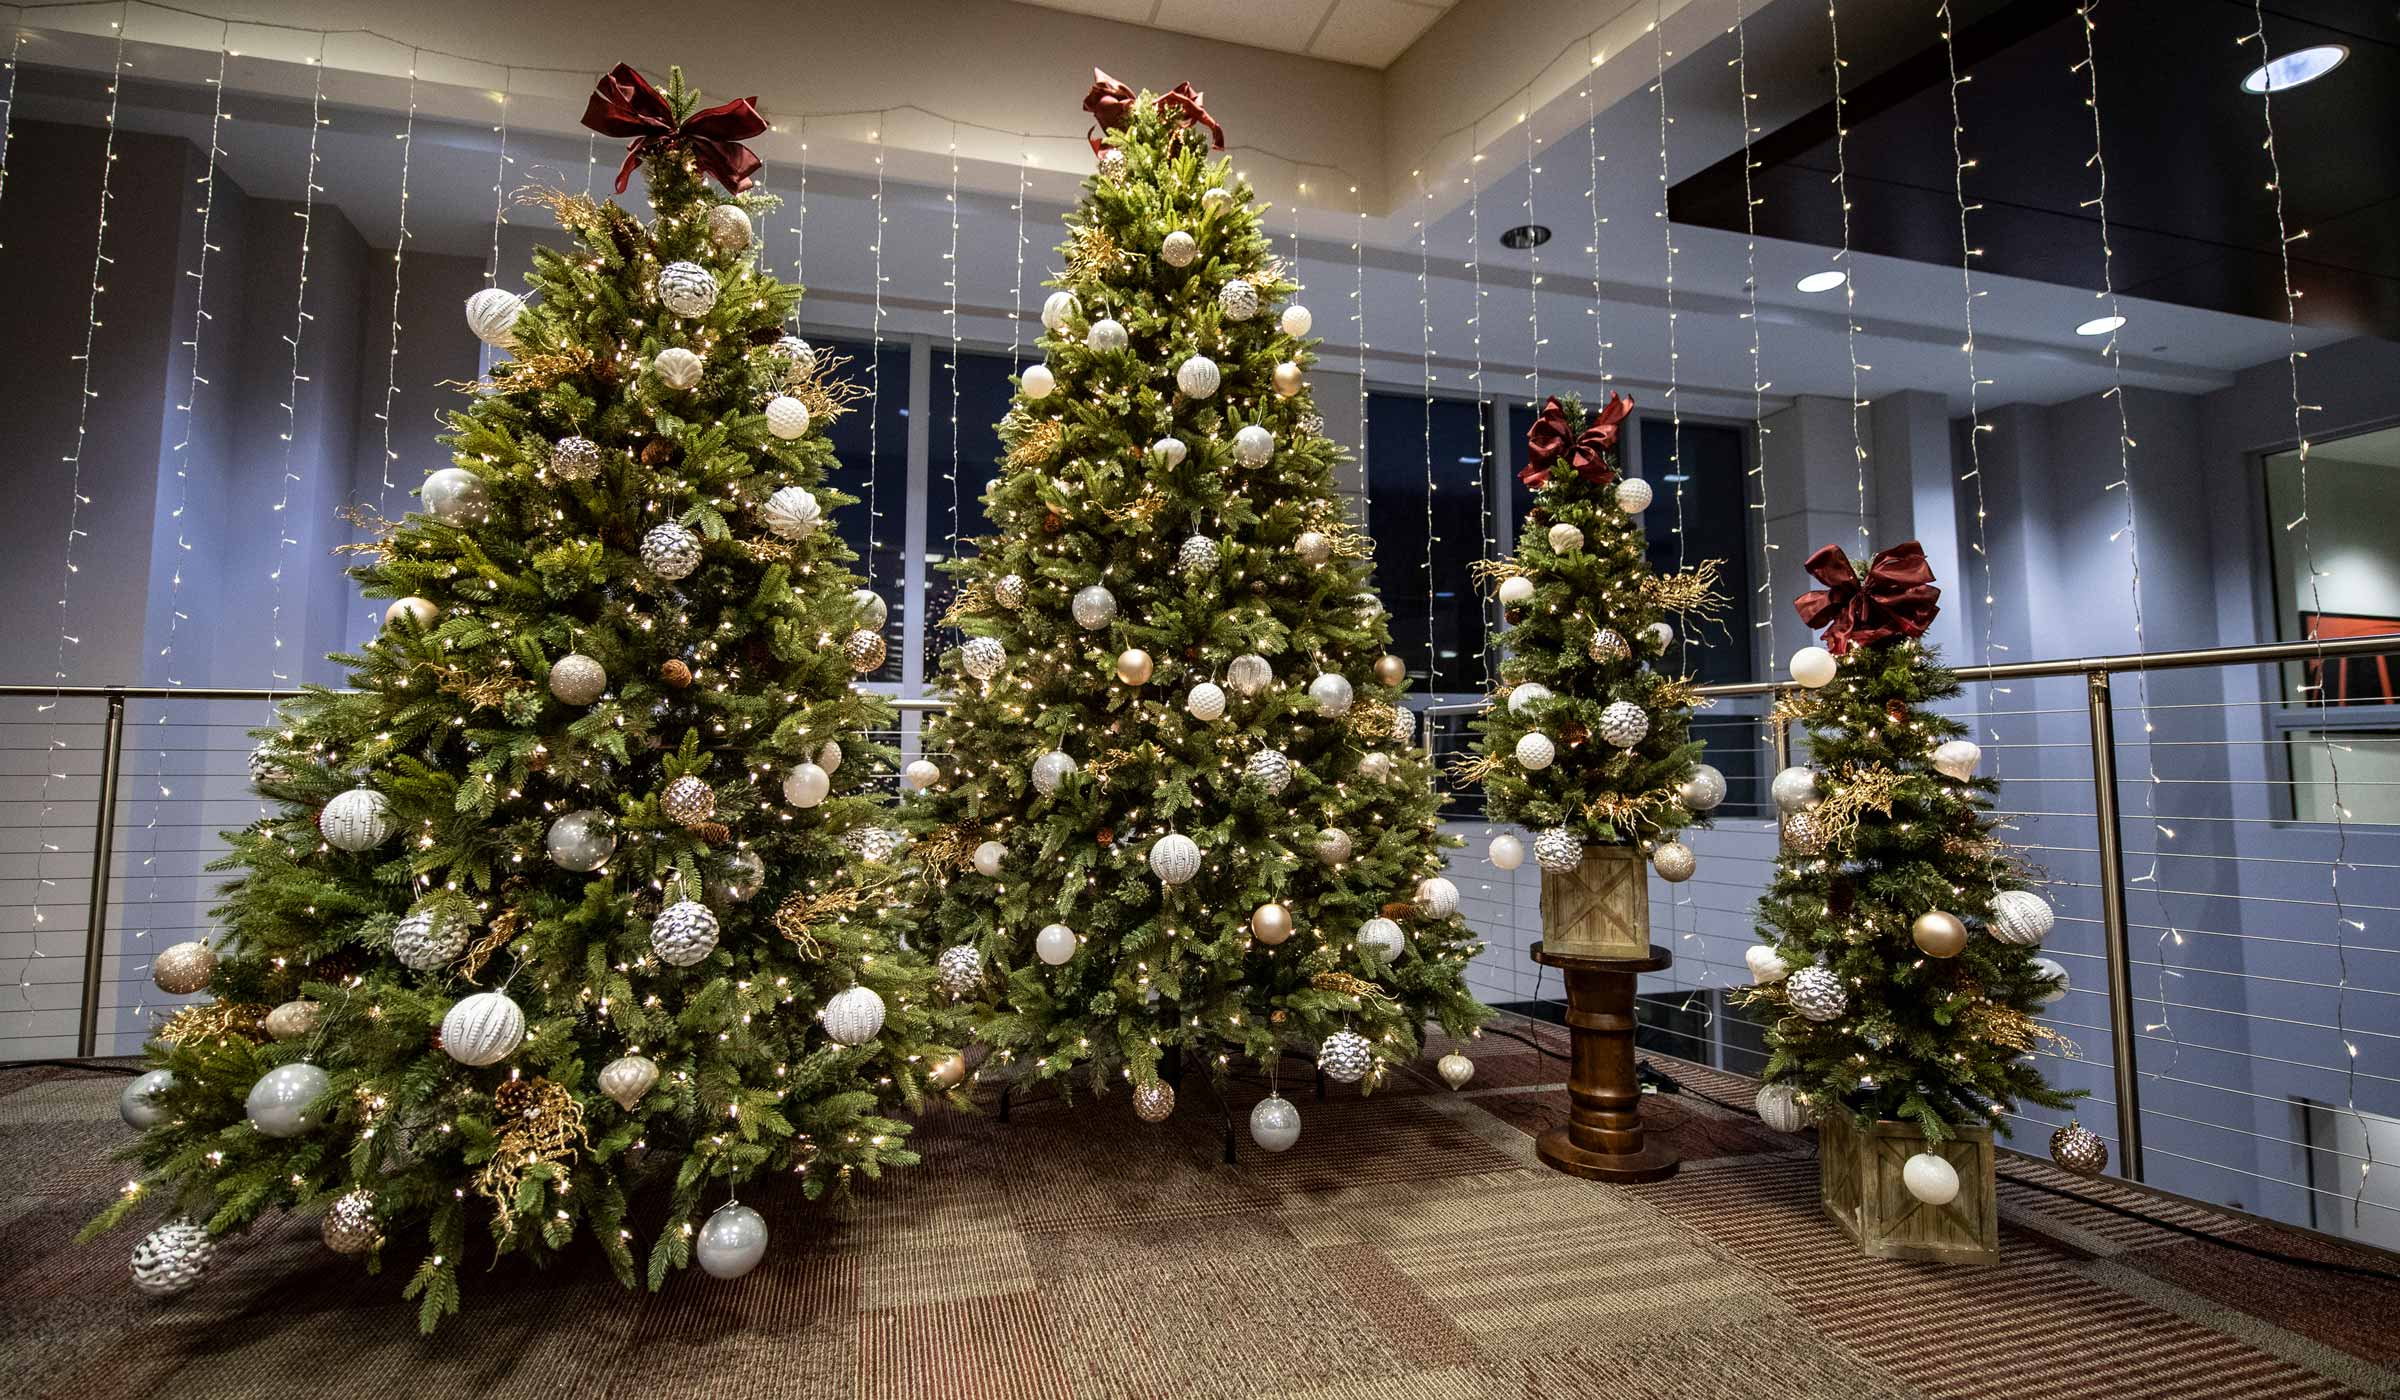 Christmas Trees in the Student Union.